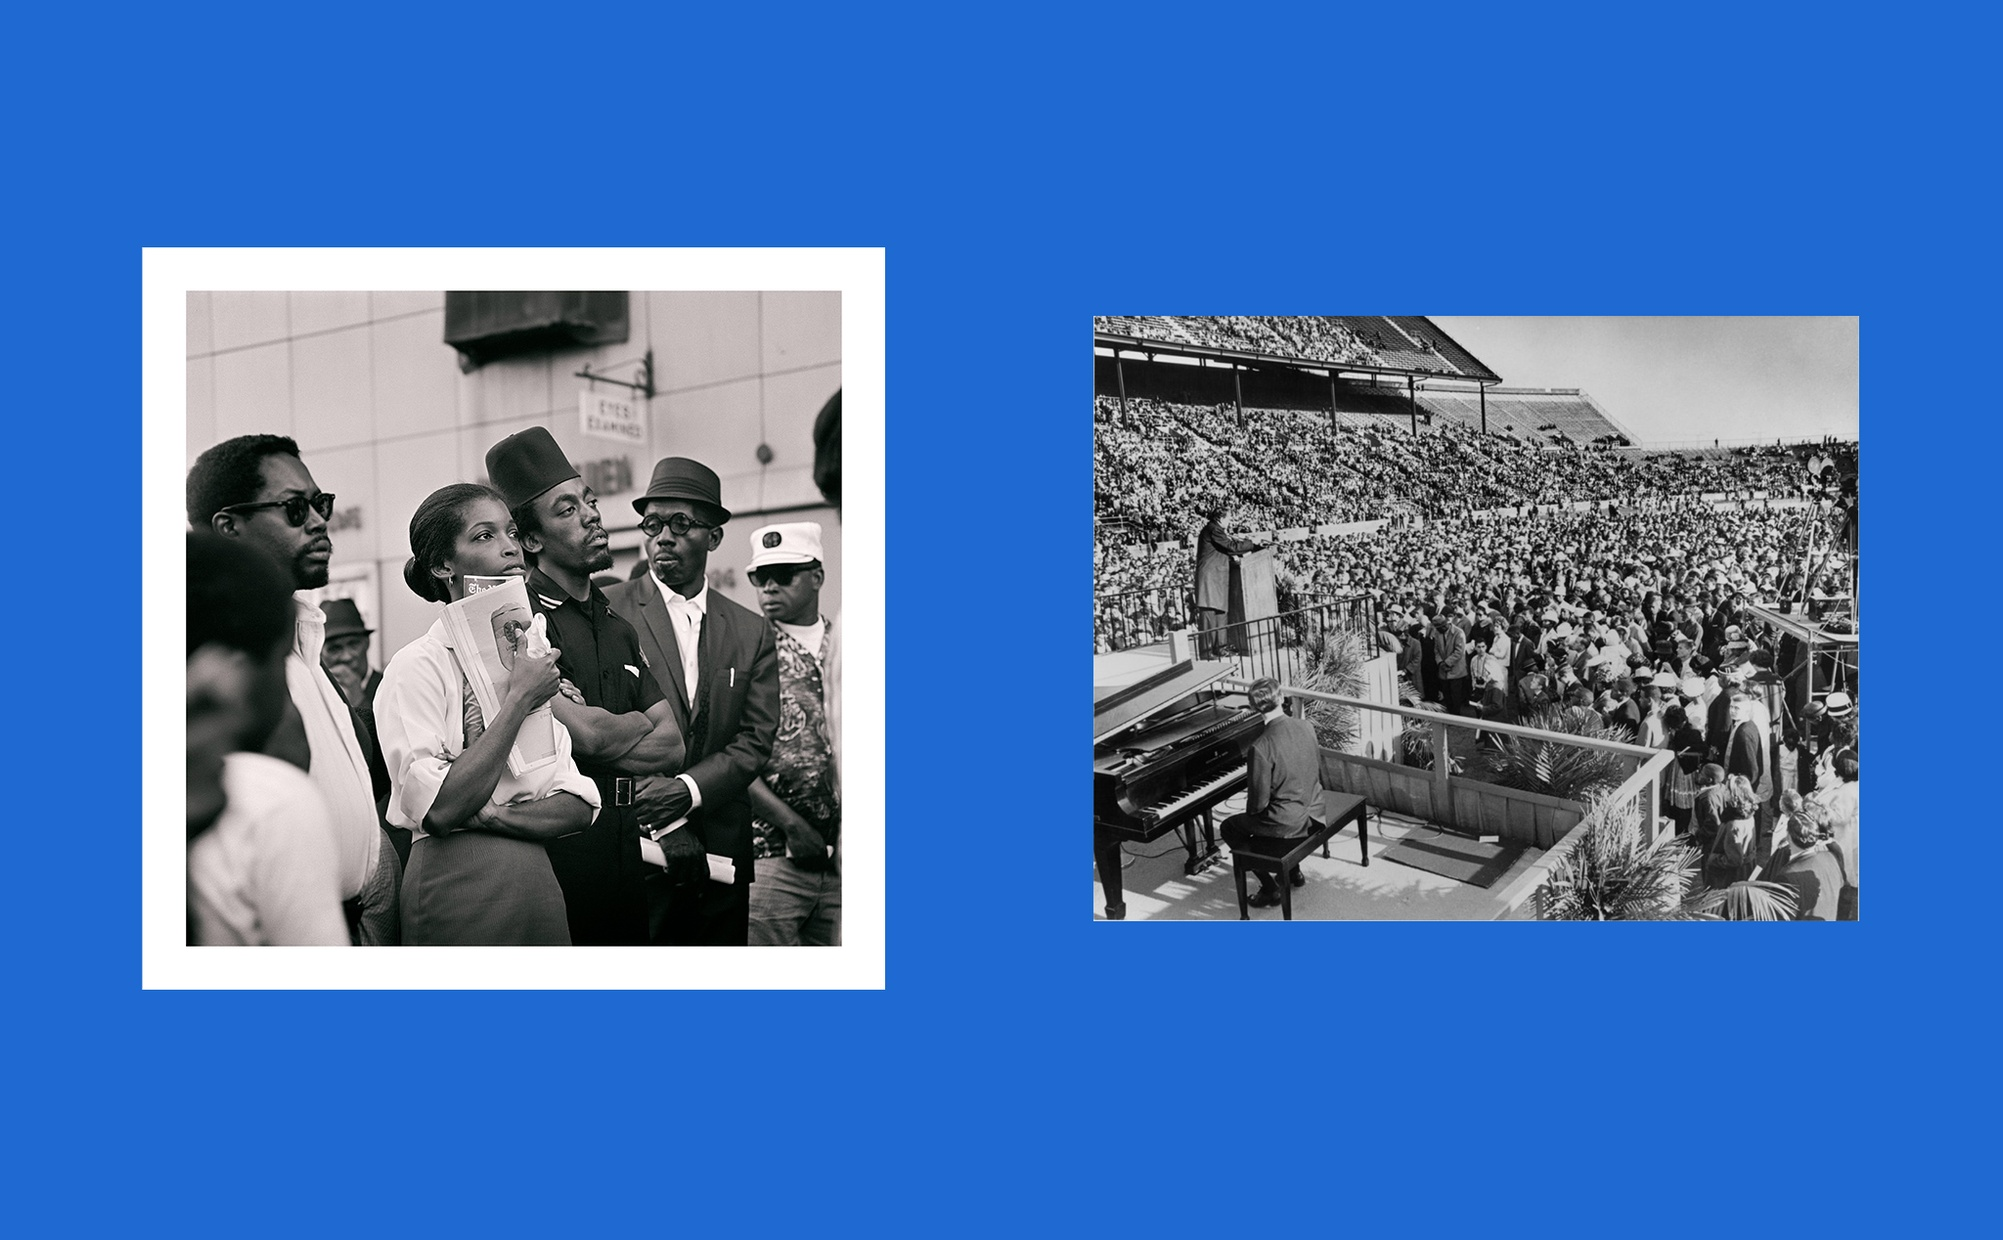 Two images side by side, one image is a black and white photograph of a group of seven dark-skinned people looking in different directions, and the other image is a black and white photograph of a stadium full of people with a light-skinned man sitting at a piano and an another light-skinned man at a podium on stage.